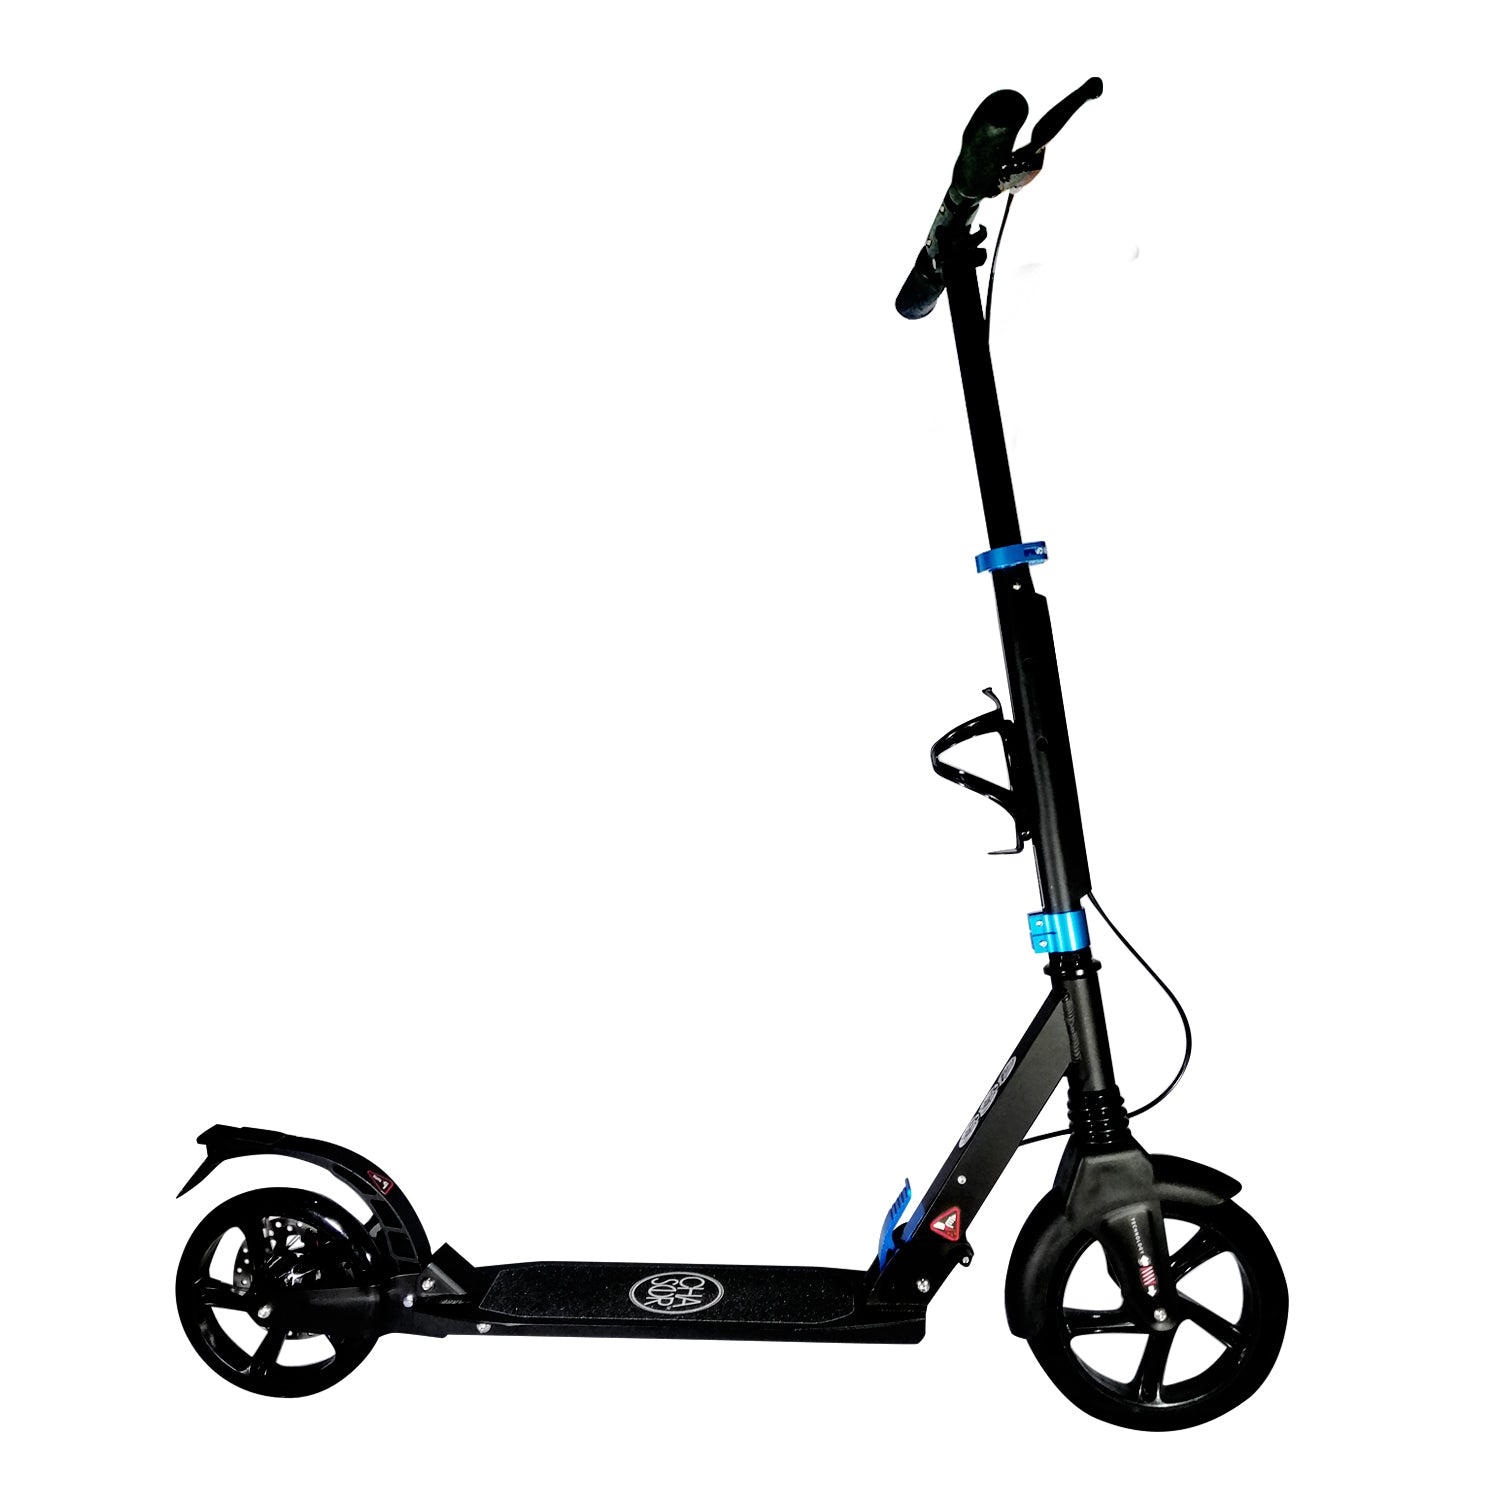 Chaser X1 Manual Kick Scooter-Black/Blue